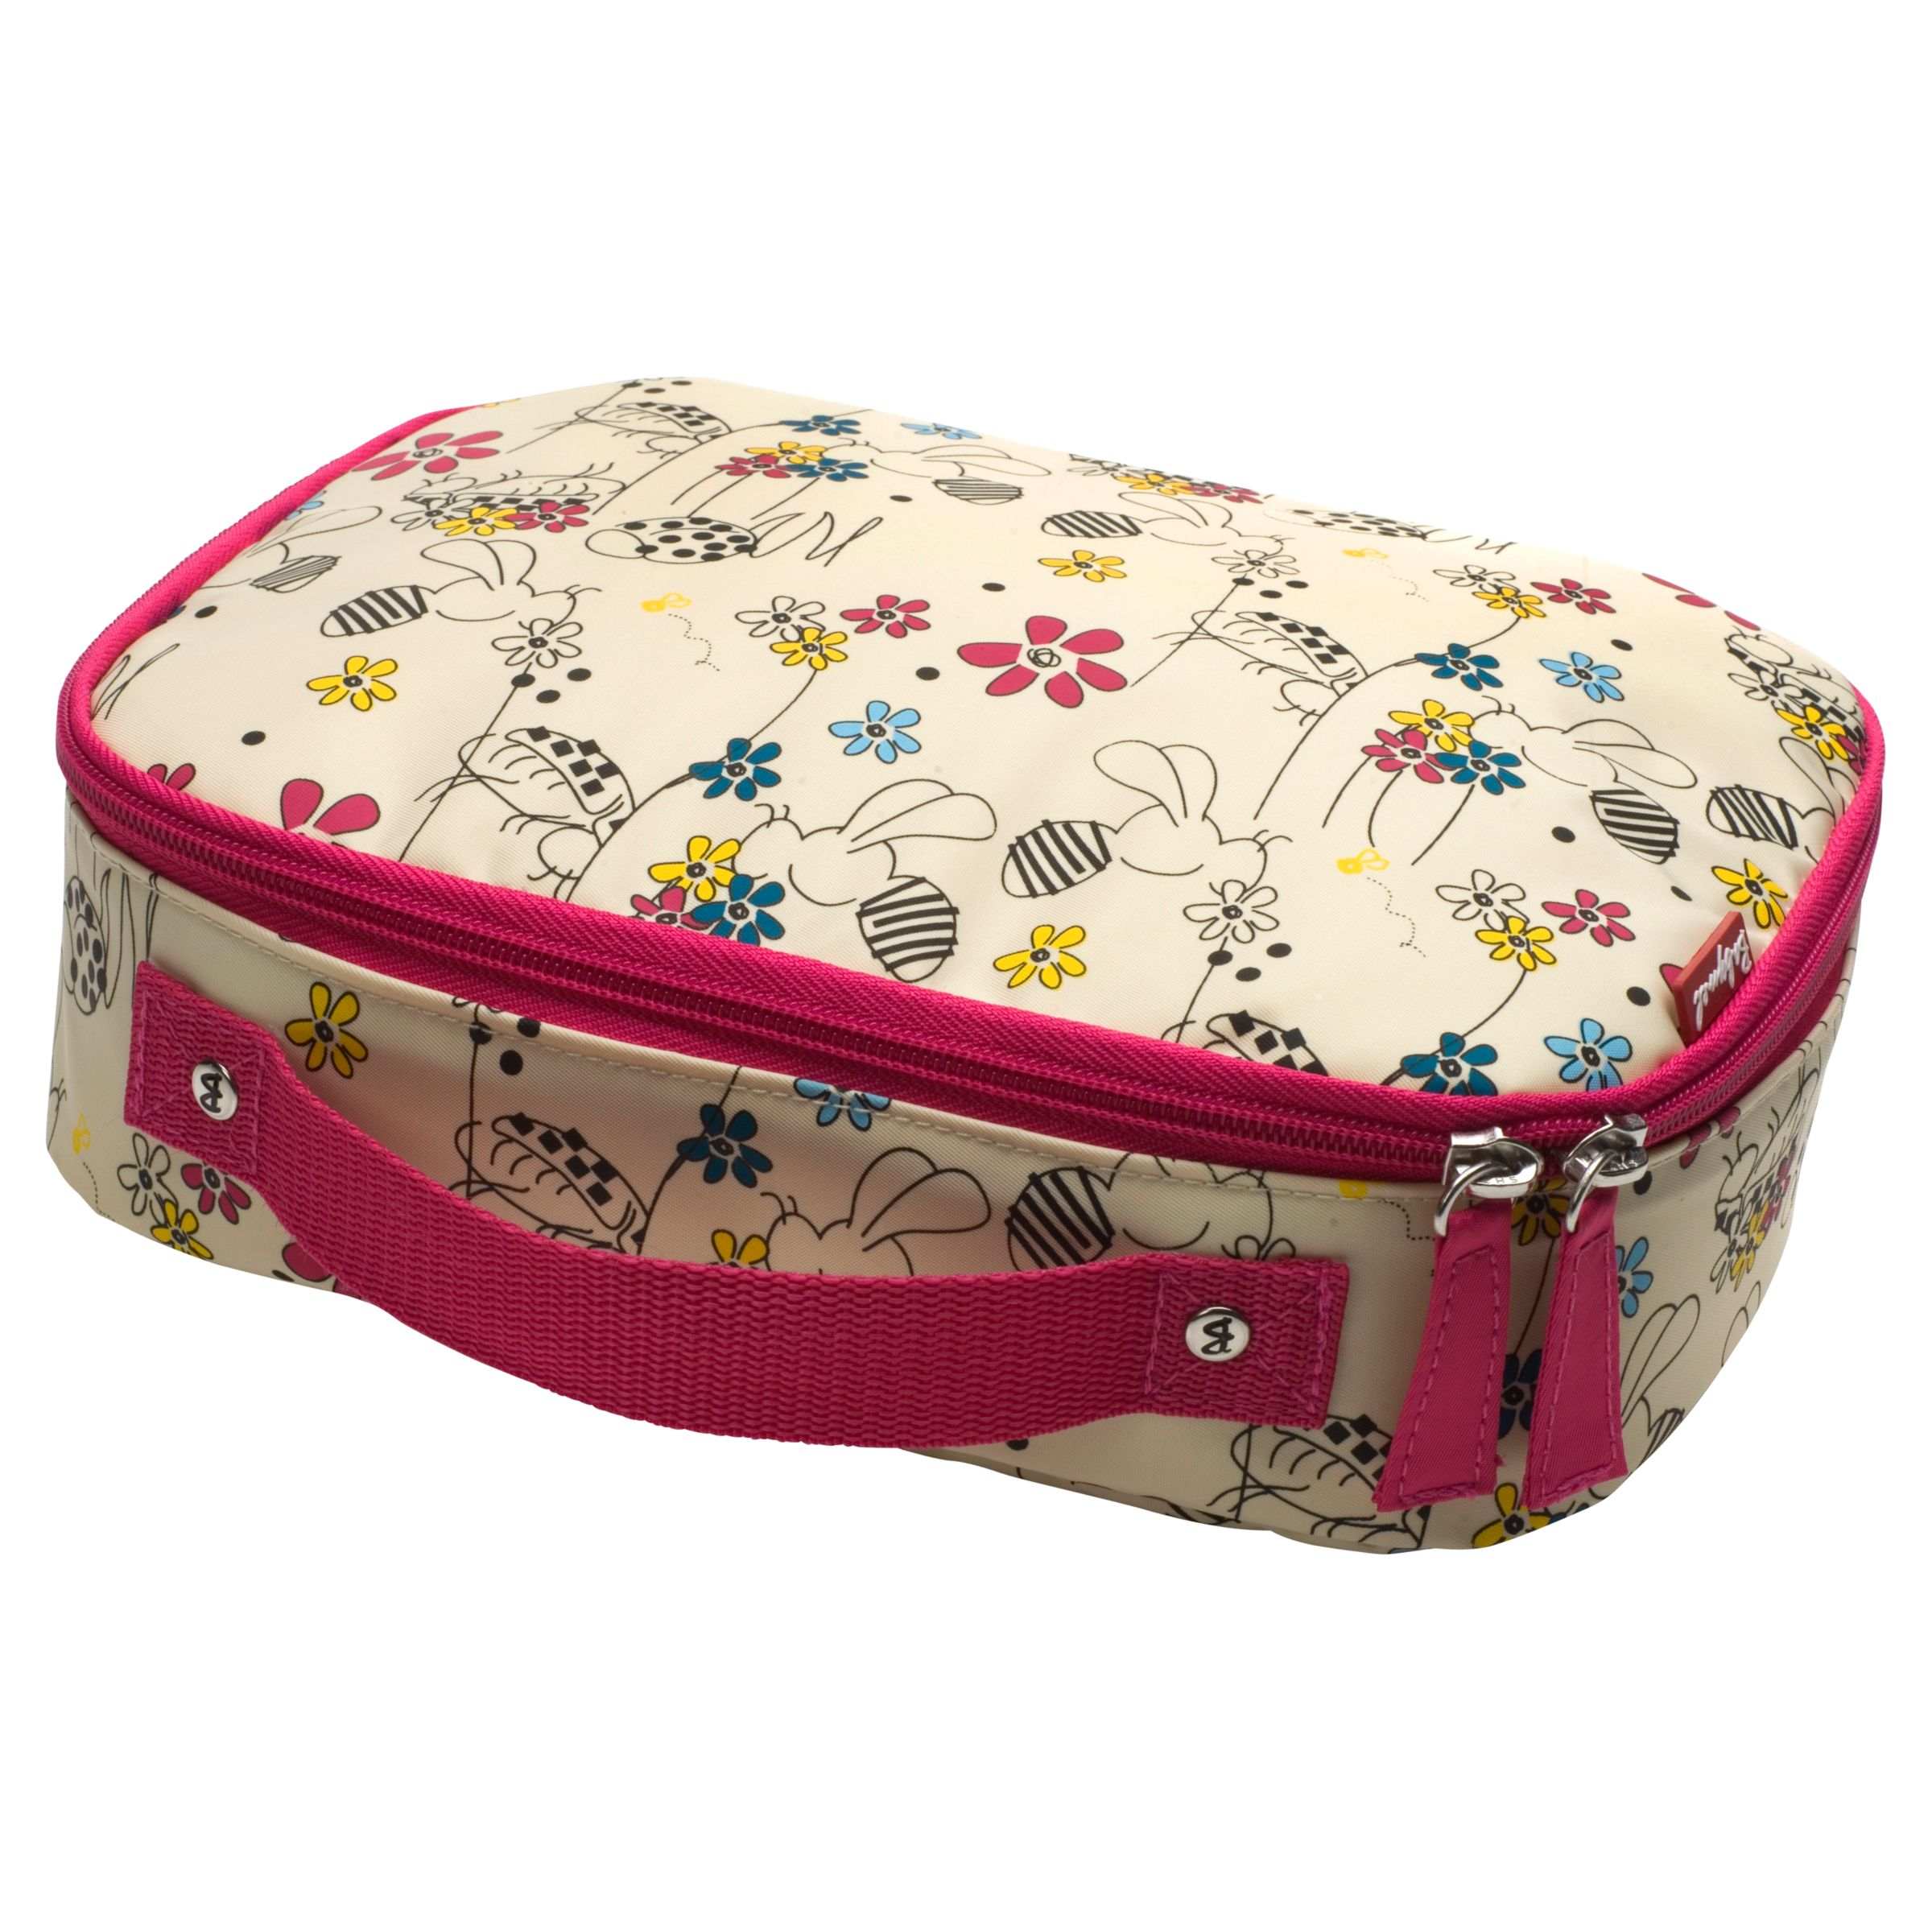 Babymel Buzzy Bee Lunch Bag, Pink/Multi